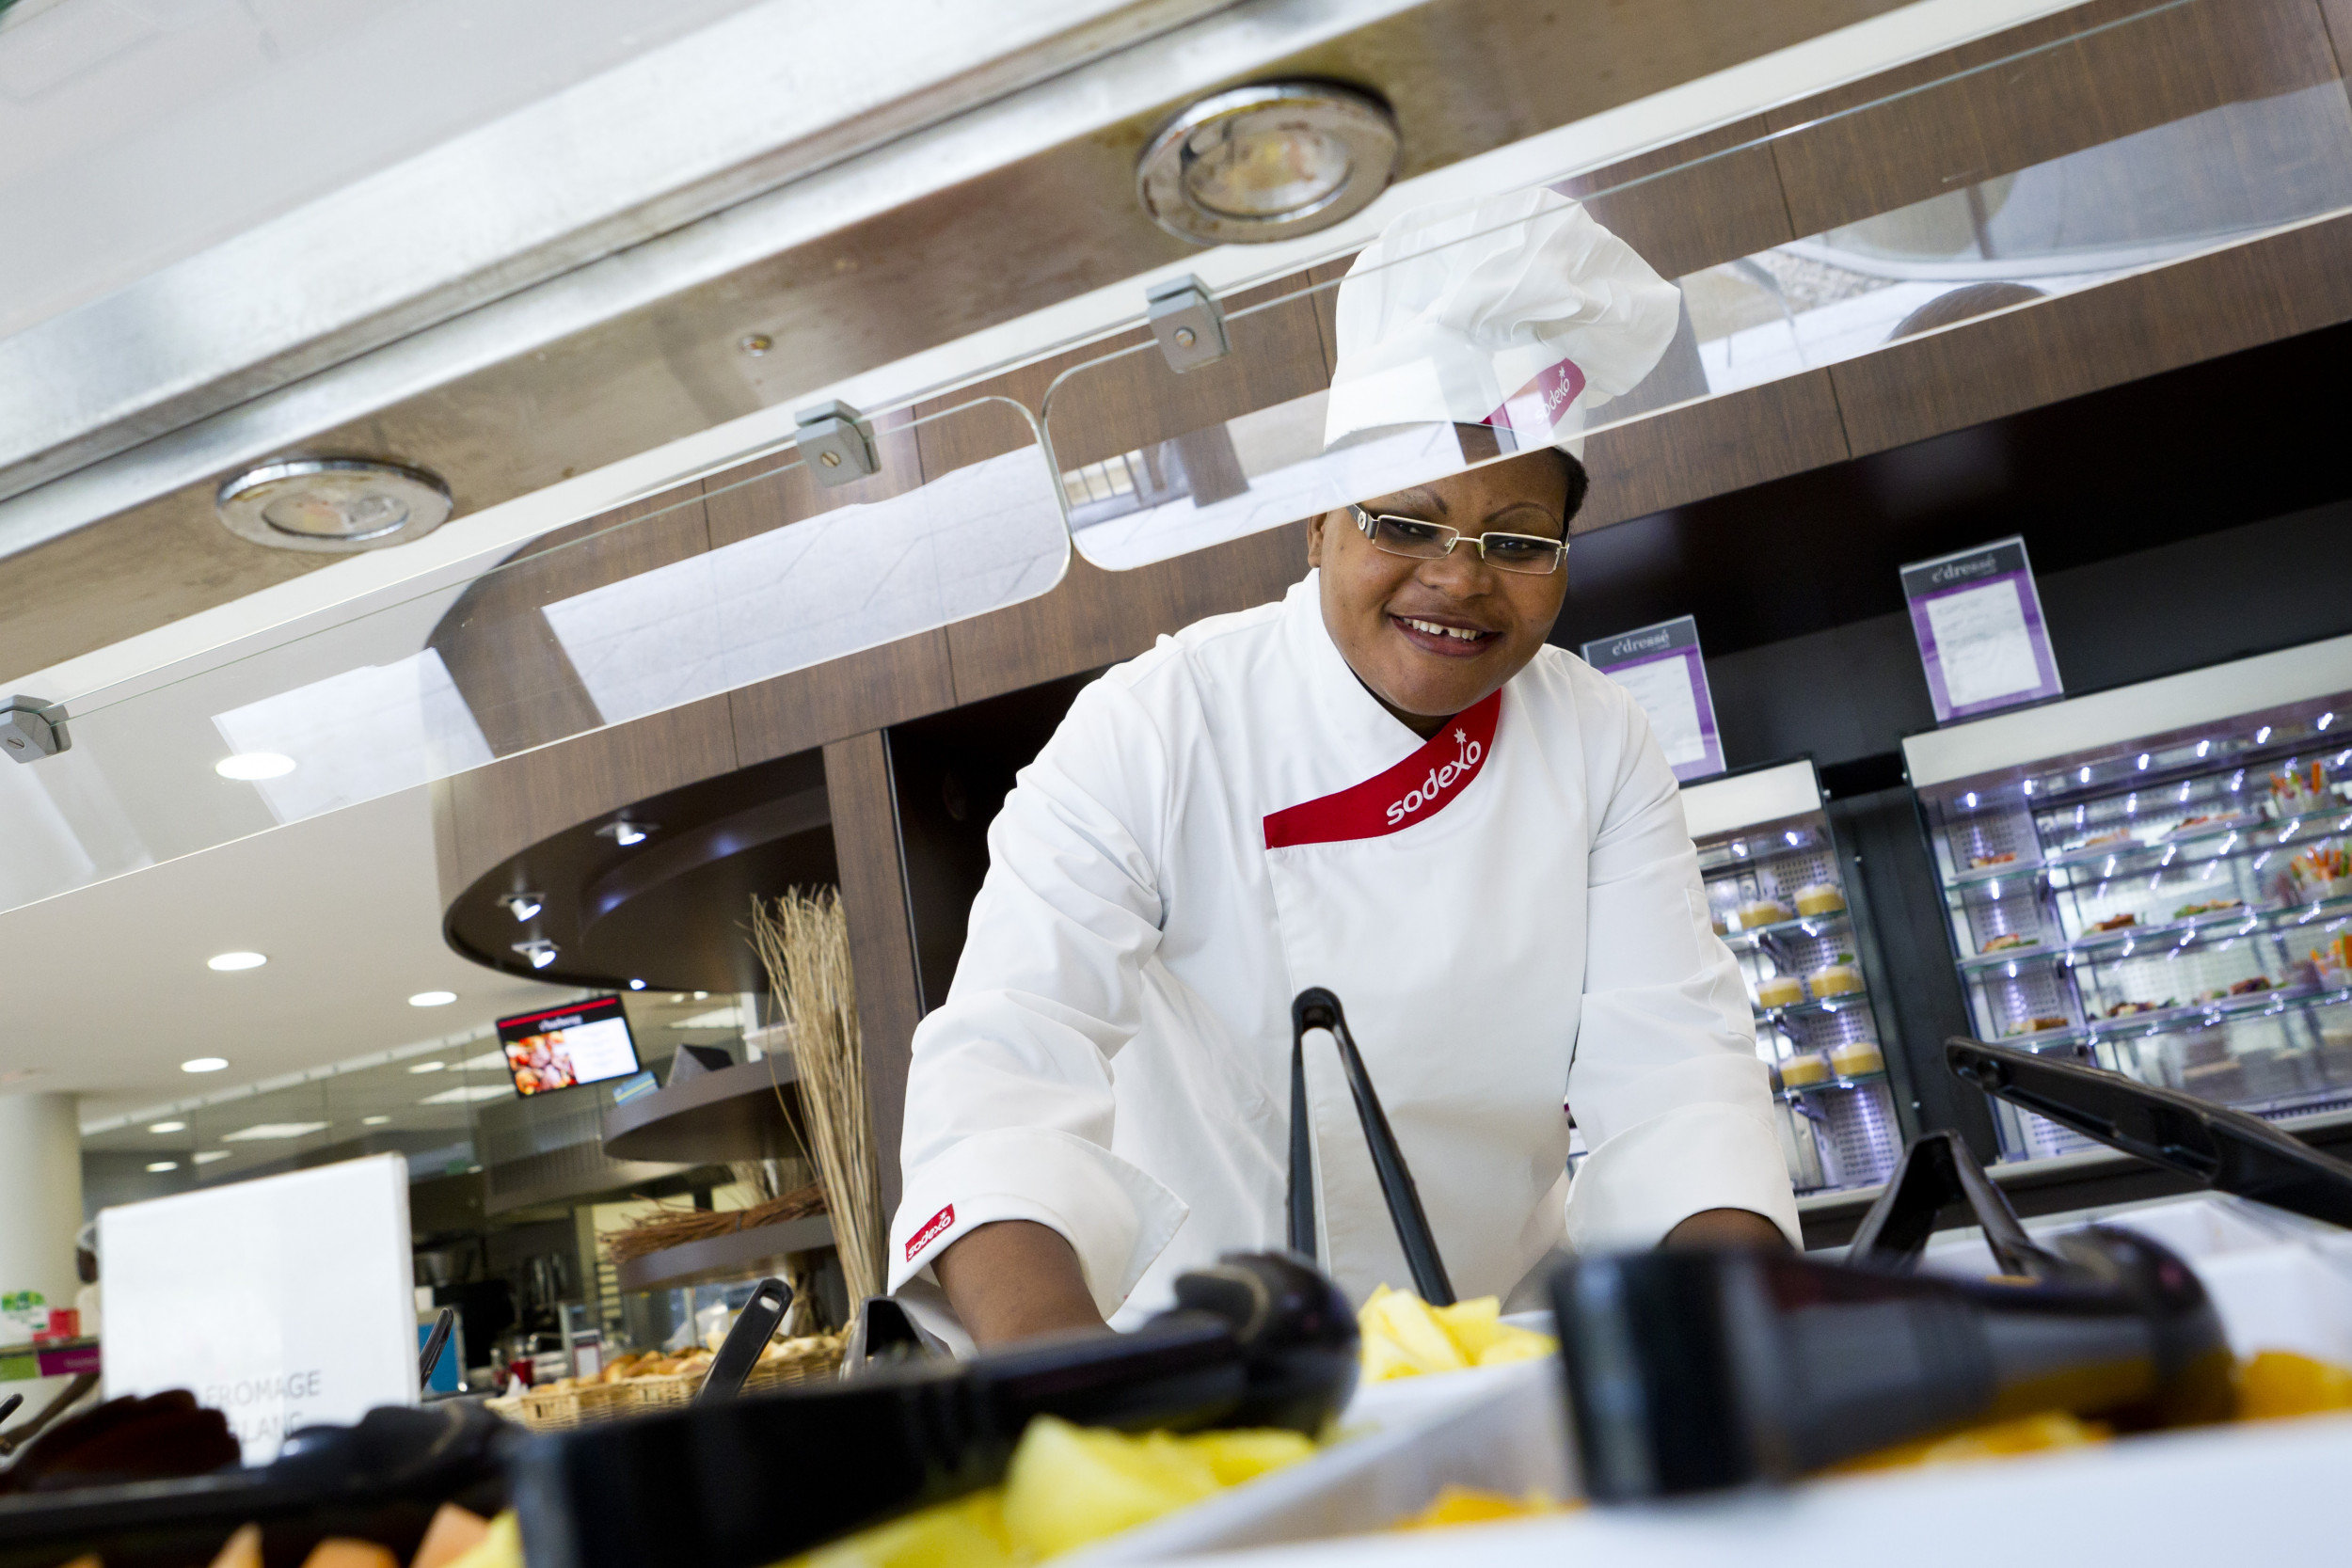 A sodexo chef preparing food